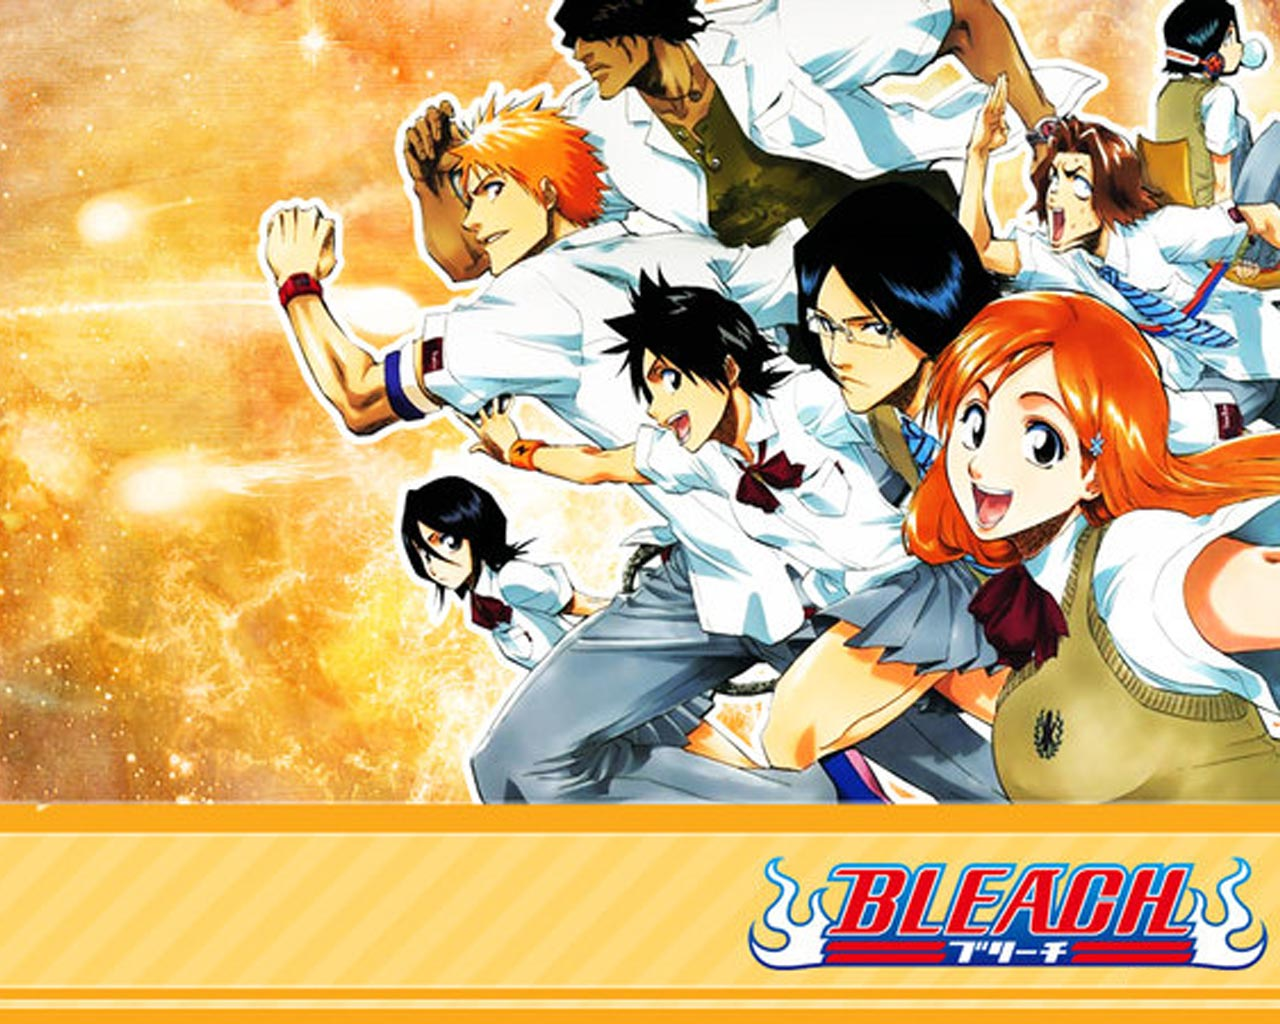 http://4.bp.blogspot.com/-y9bvbiI3-Yc/Tv6QFxcYA8I/AAAAAAAABAg/8dvb0H_U7ok/s1600/awesome-bleach-wallpaper.jpg